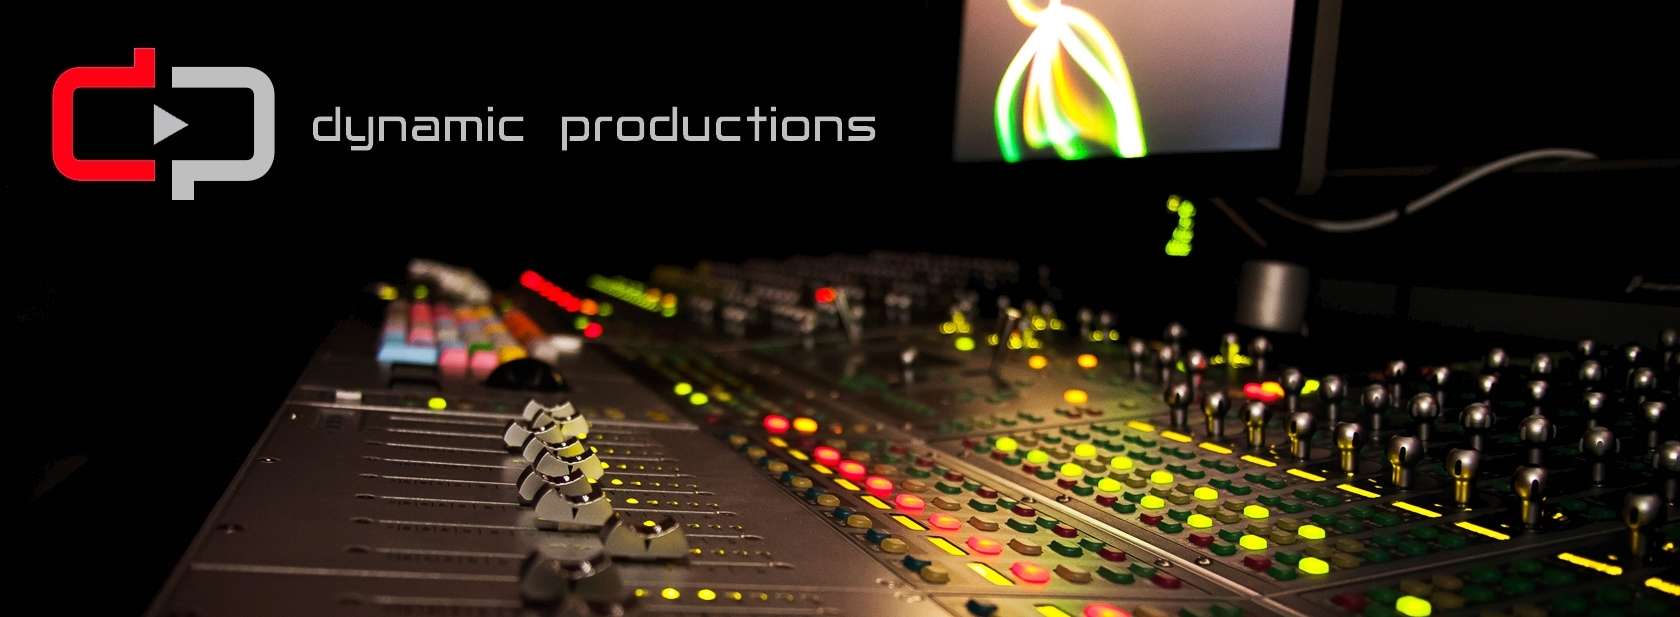 Dynamic_productions